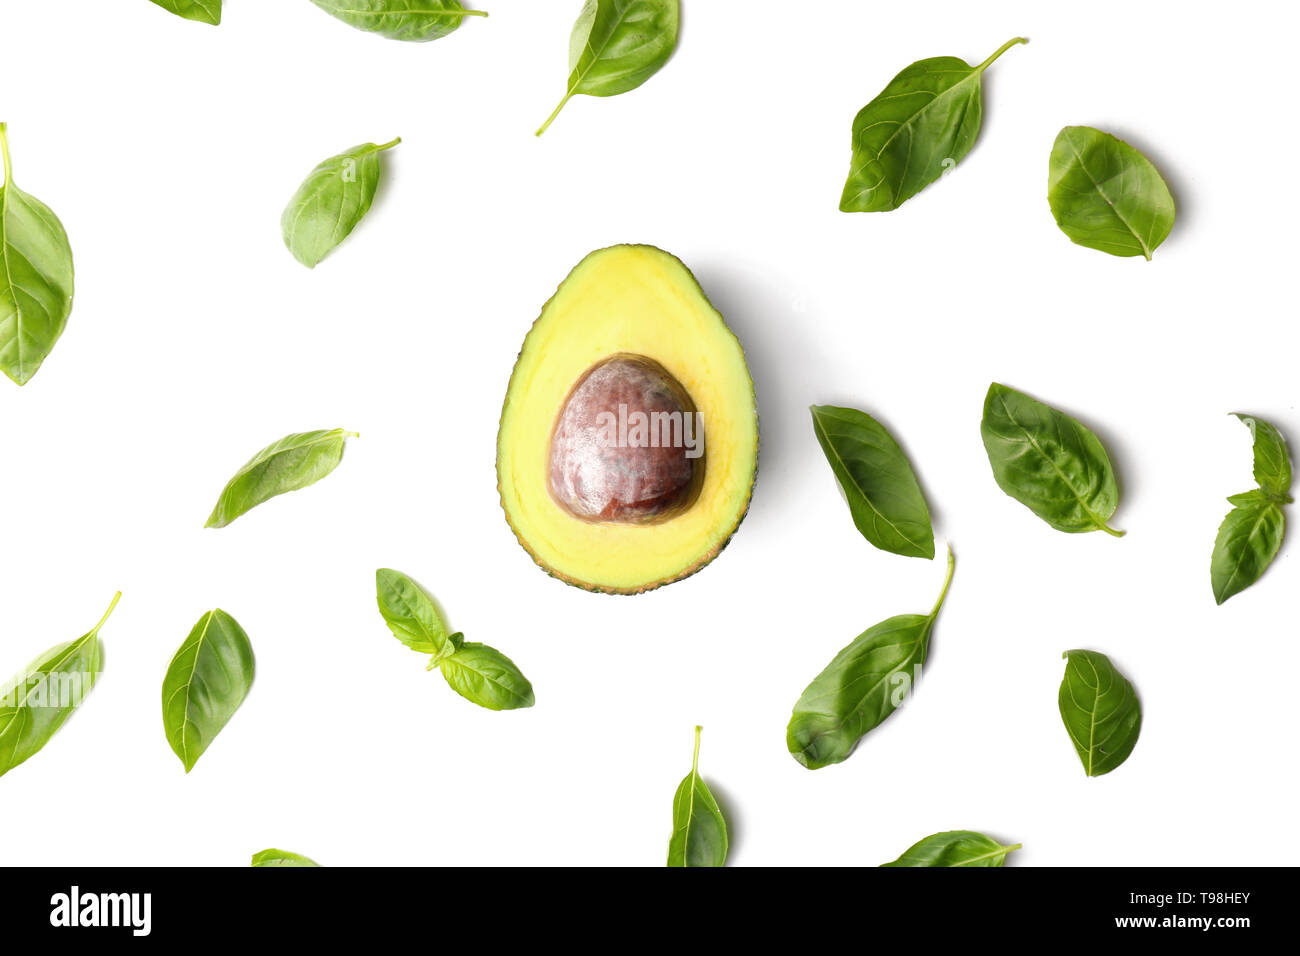 Half of ripe avocado and basil leaves on white background - Stock Image